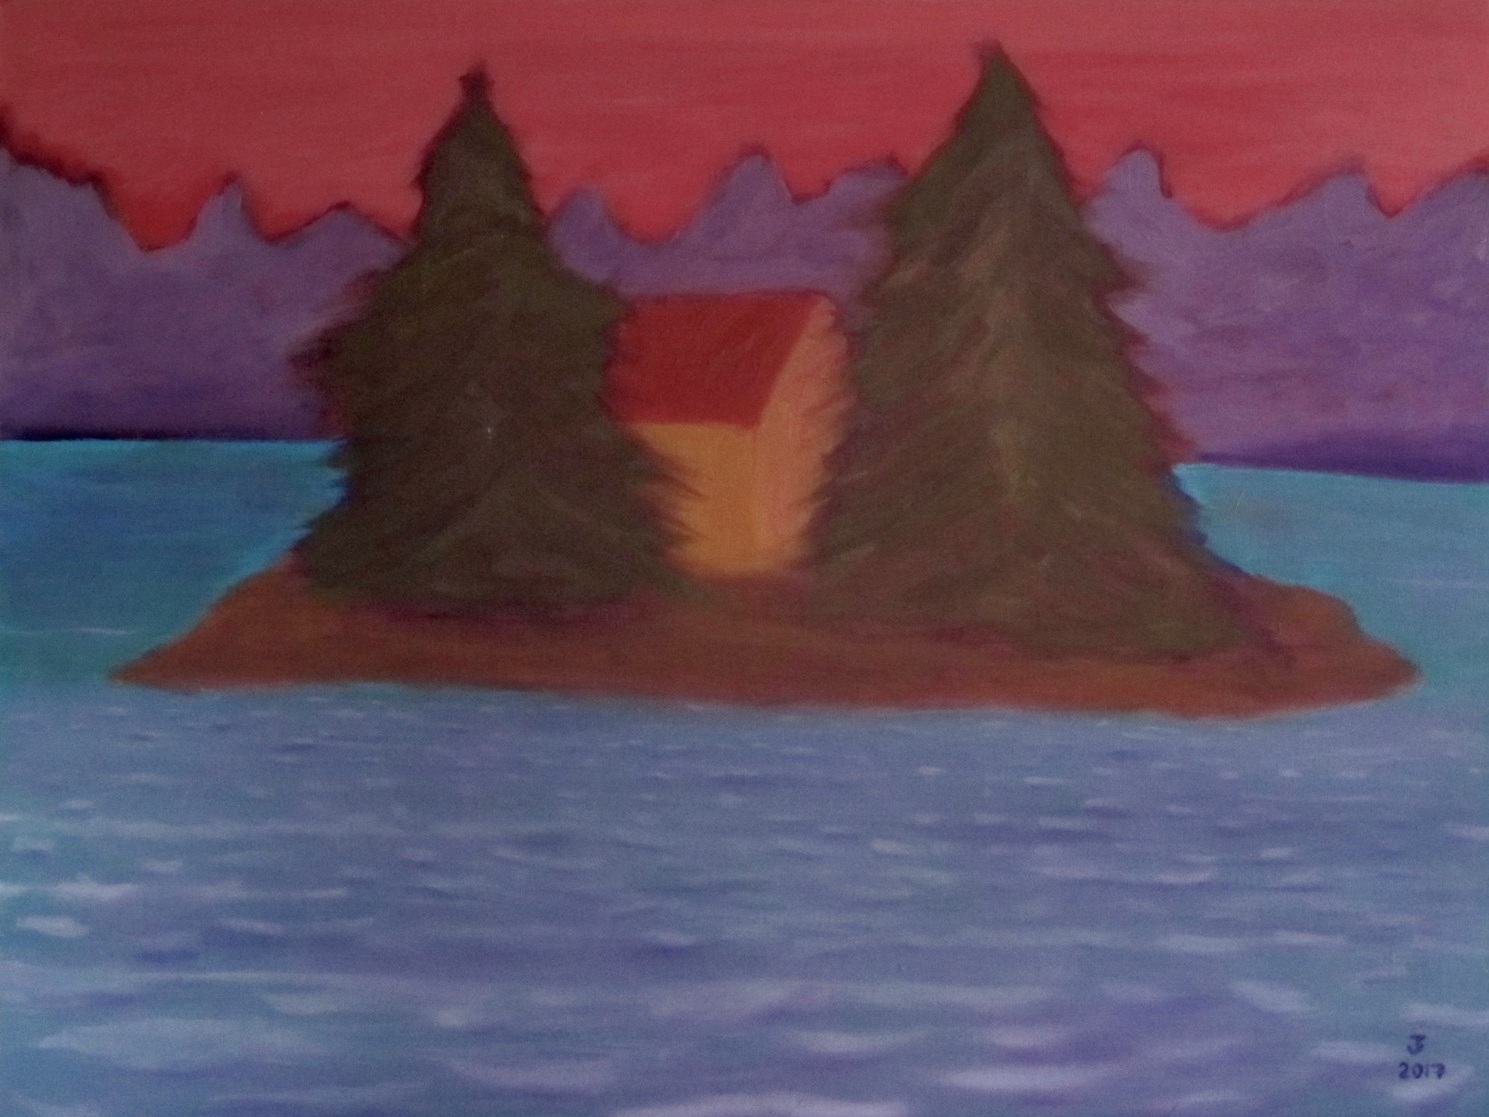 Two Tree Island - Oil on Canvas30 x 40Now residing in Port Chester, NY